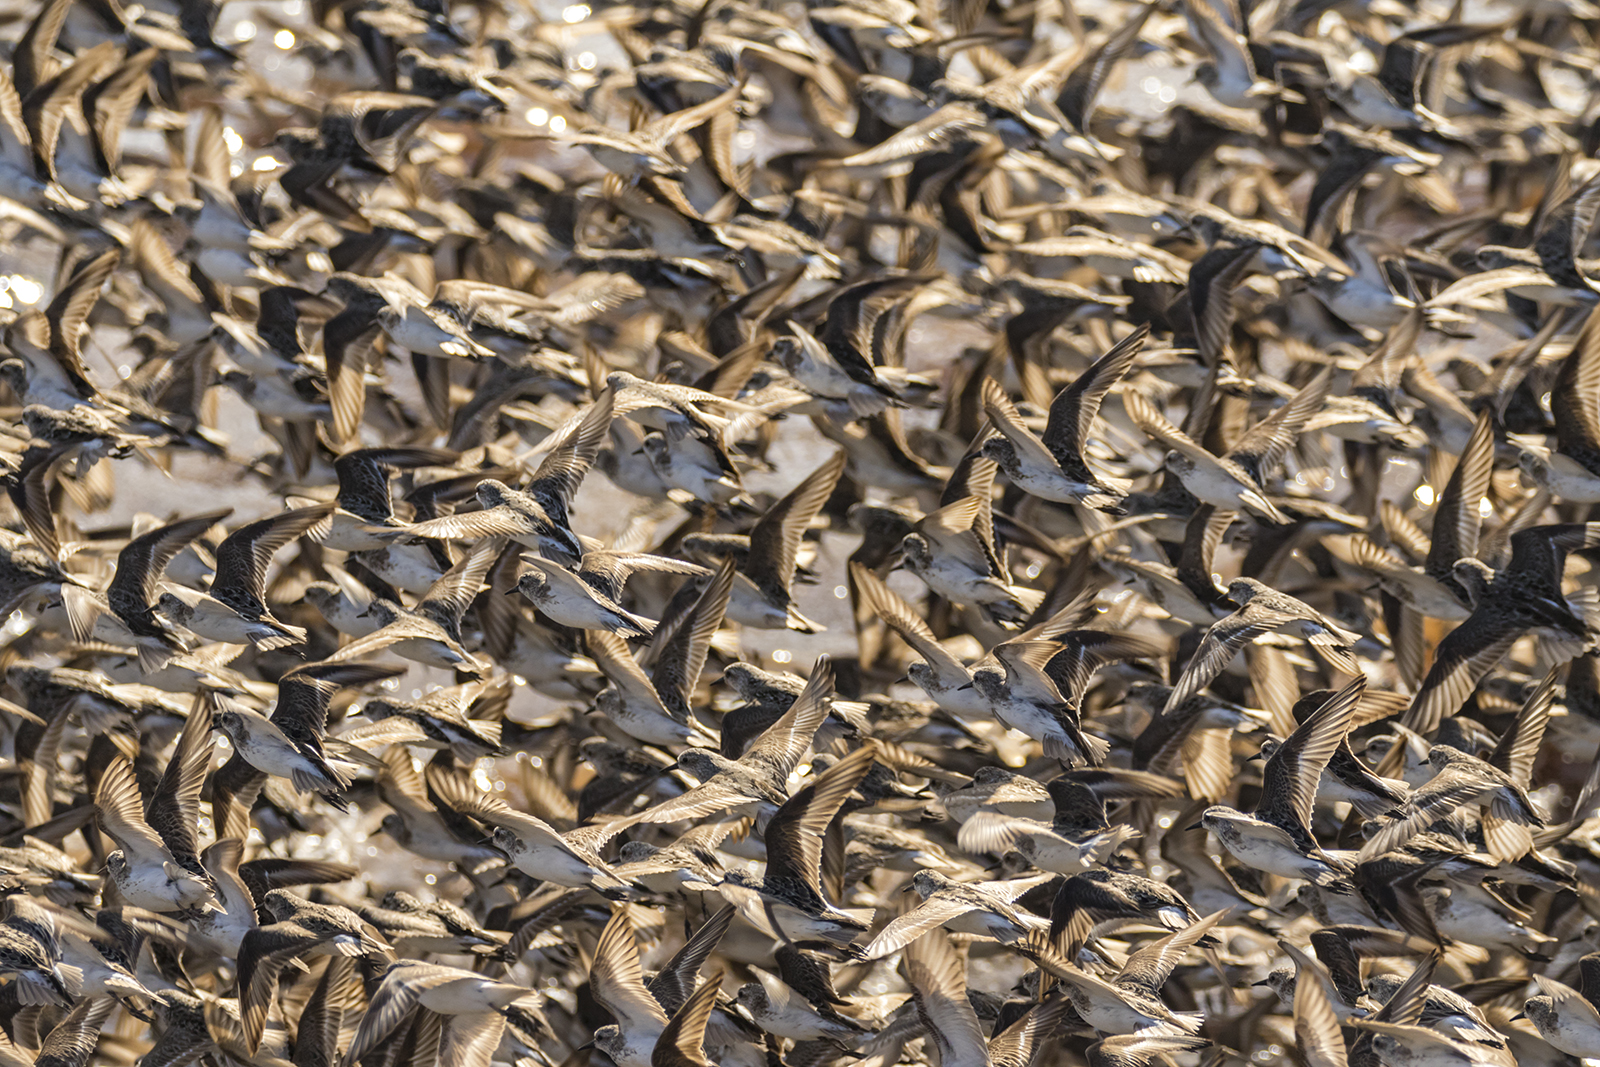 Semipalmated_Sandpipers-06-BRimages.ca